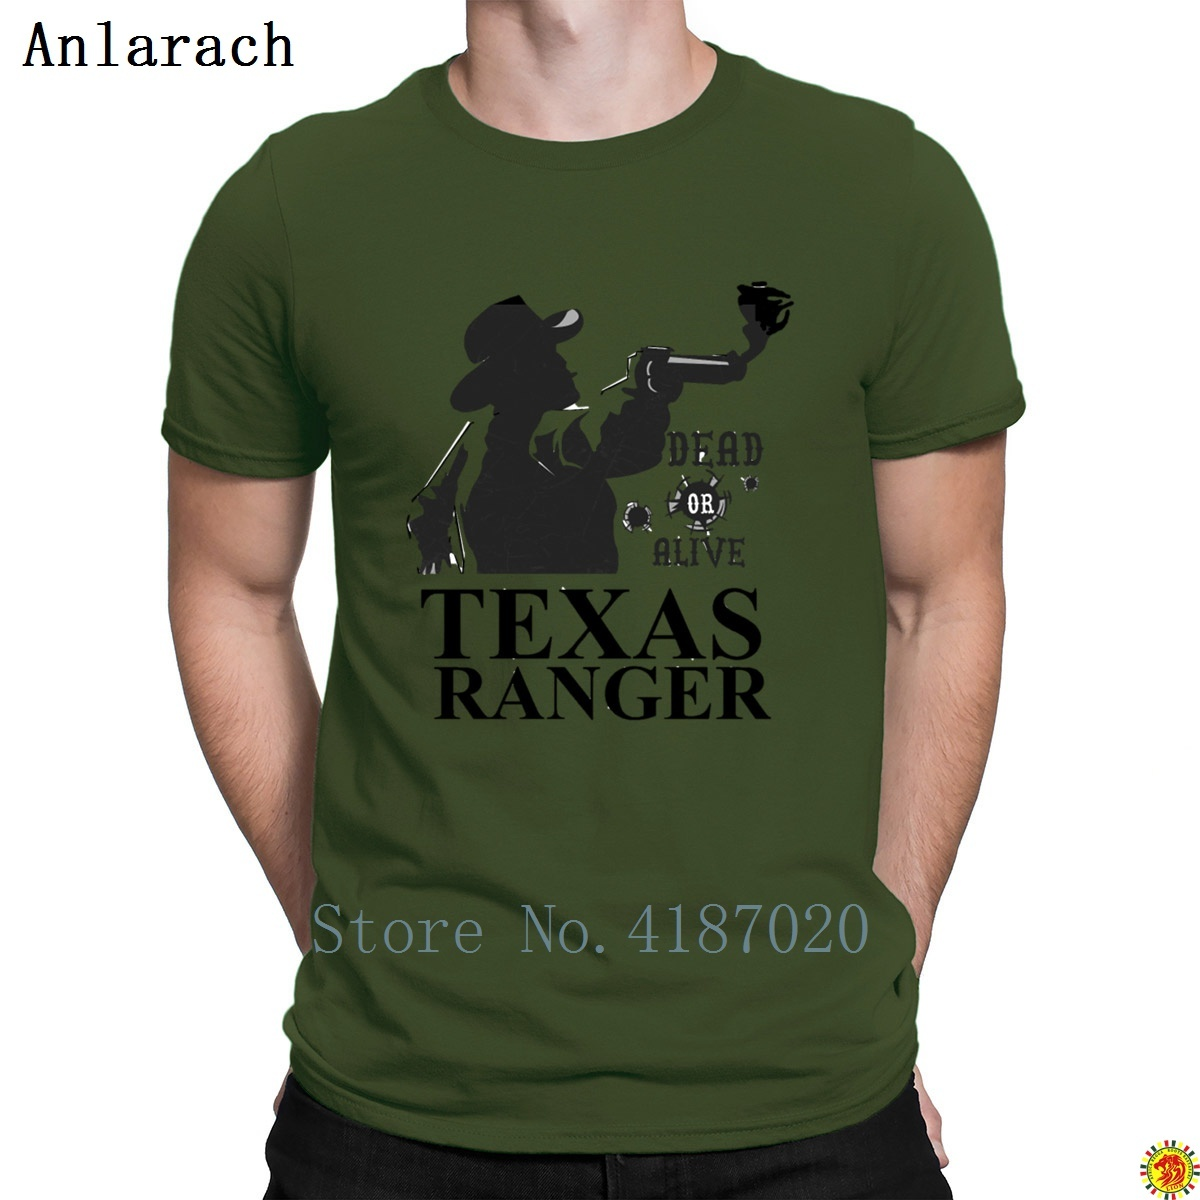 Texas Ranger T-Shirt Breathable Designs Stylish T Shirt For Men Top Tee S-3xl Summer Novelty